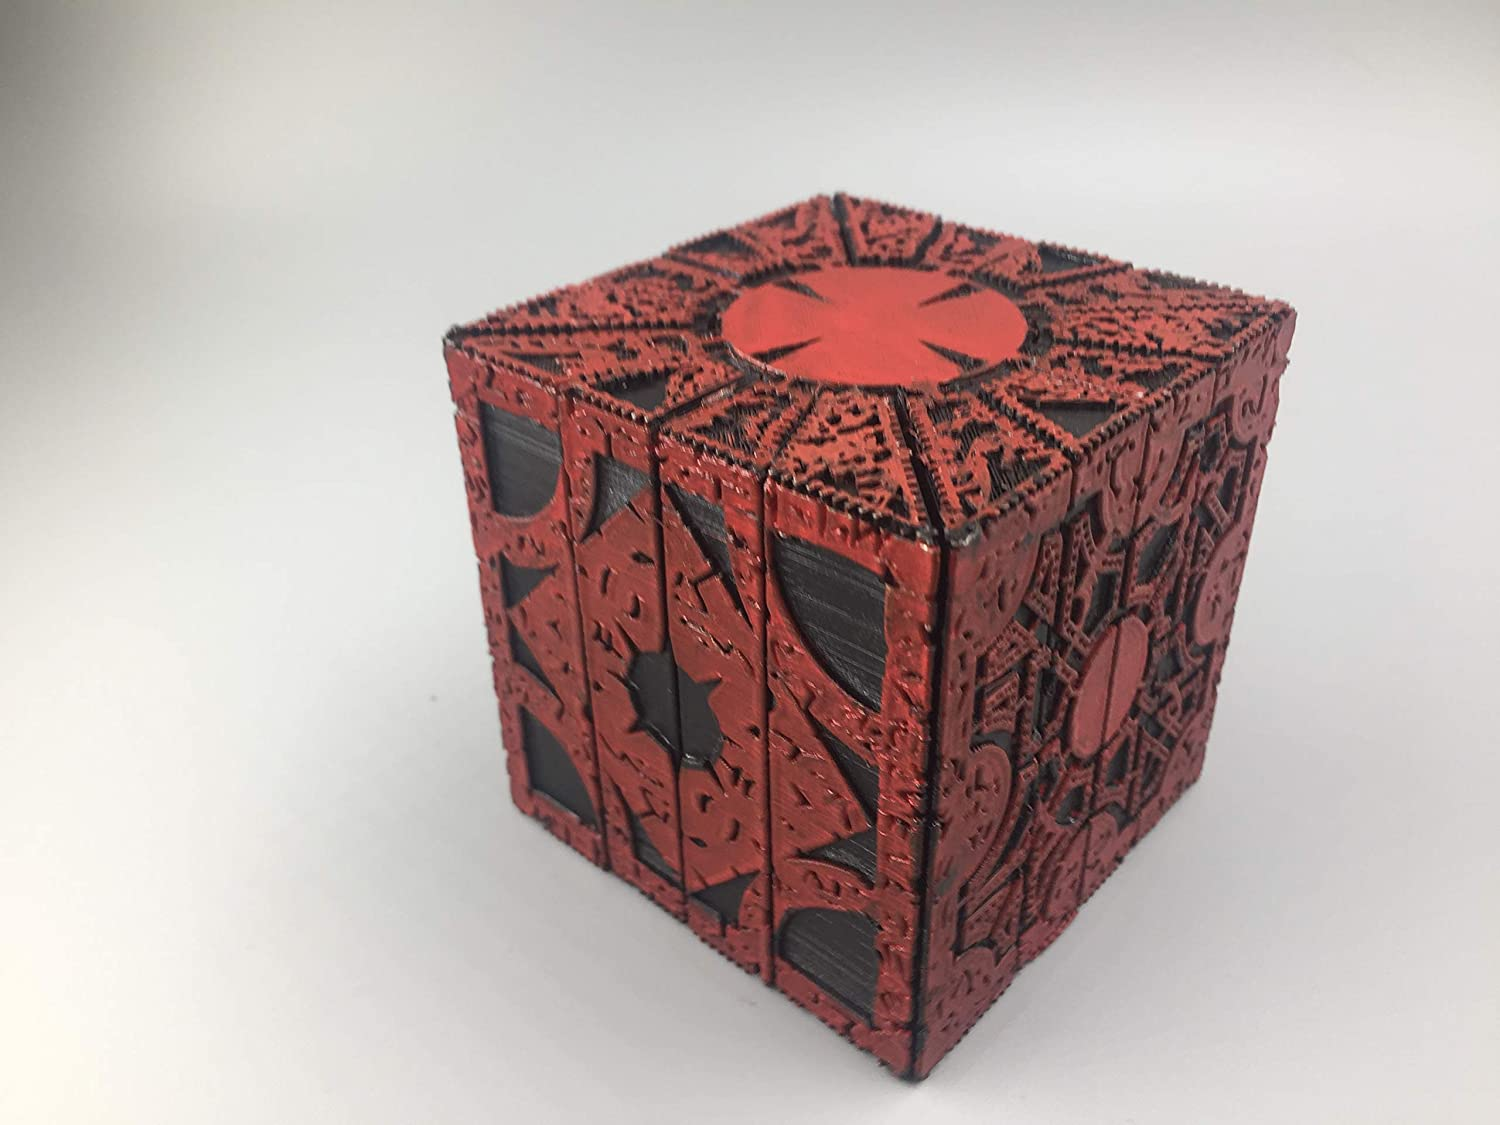 Hellraiser puzzle box custom Blood Red 1:1 replica moving lament configuration to star configuration pinhead puzzle box